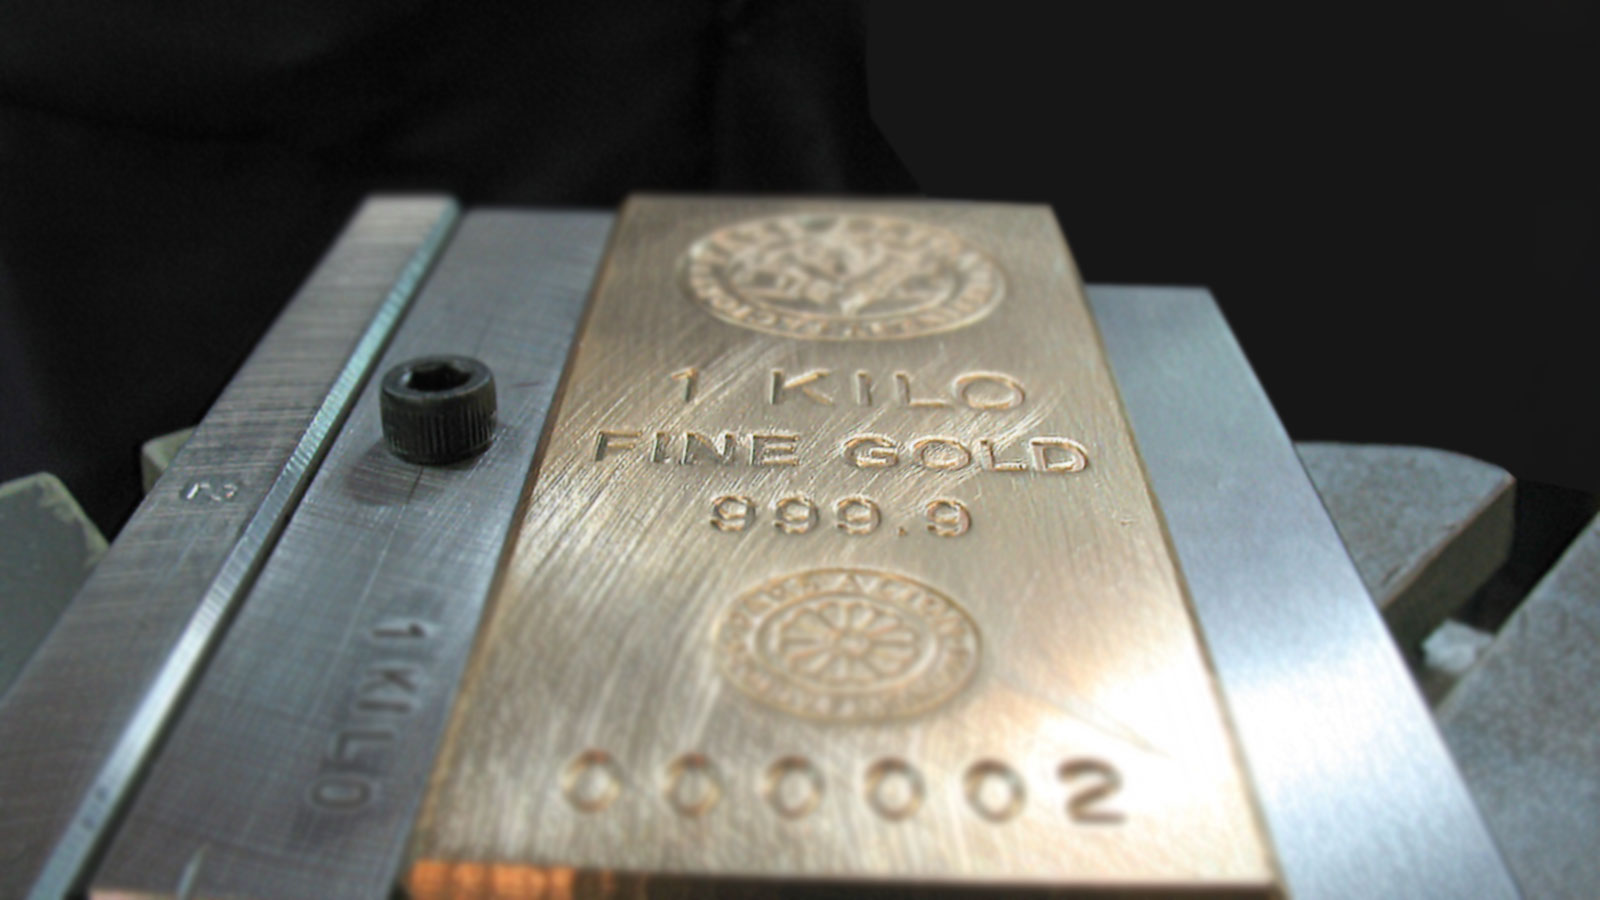 Minting tools for gold bars coins medals